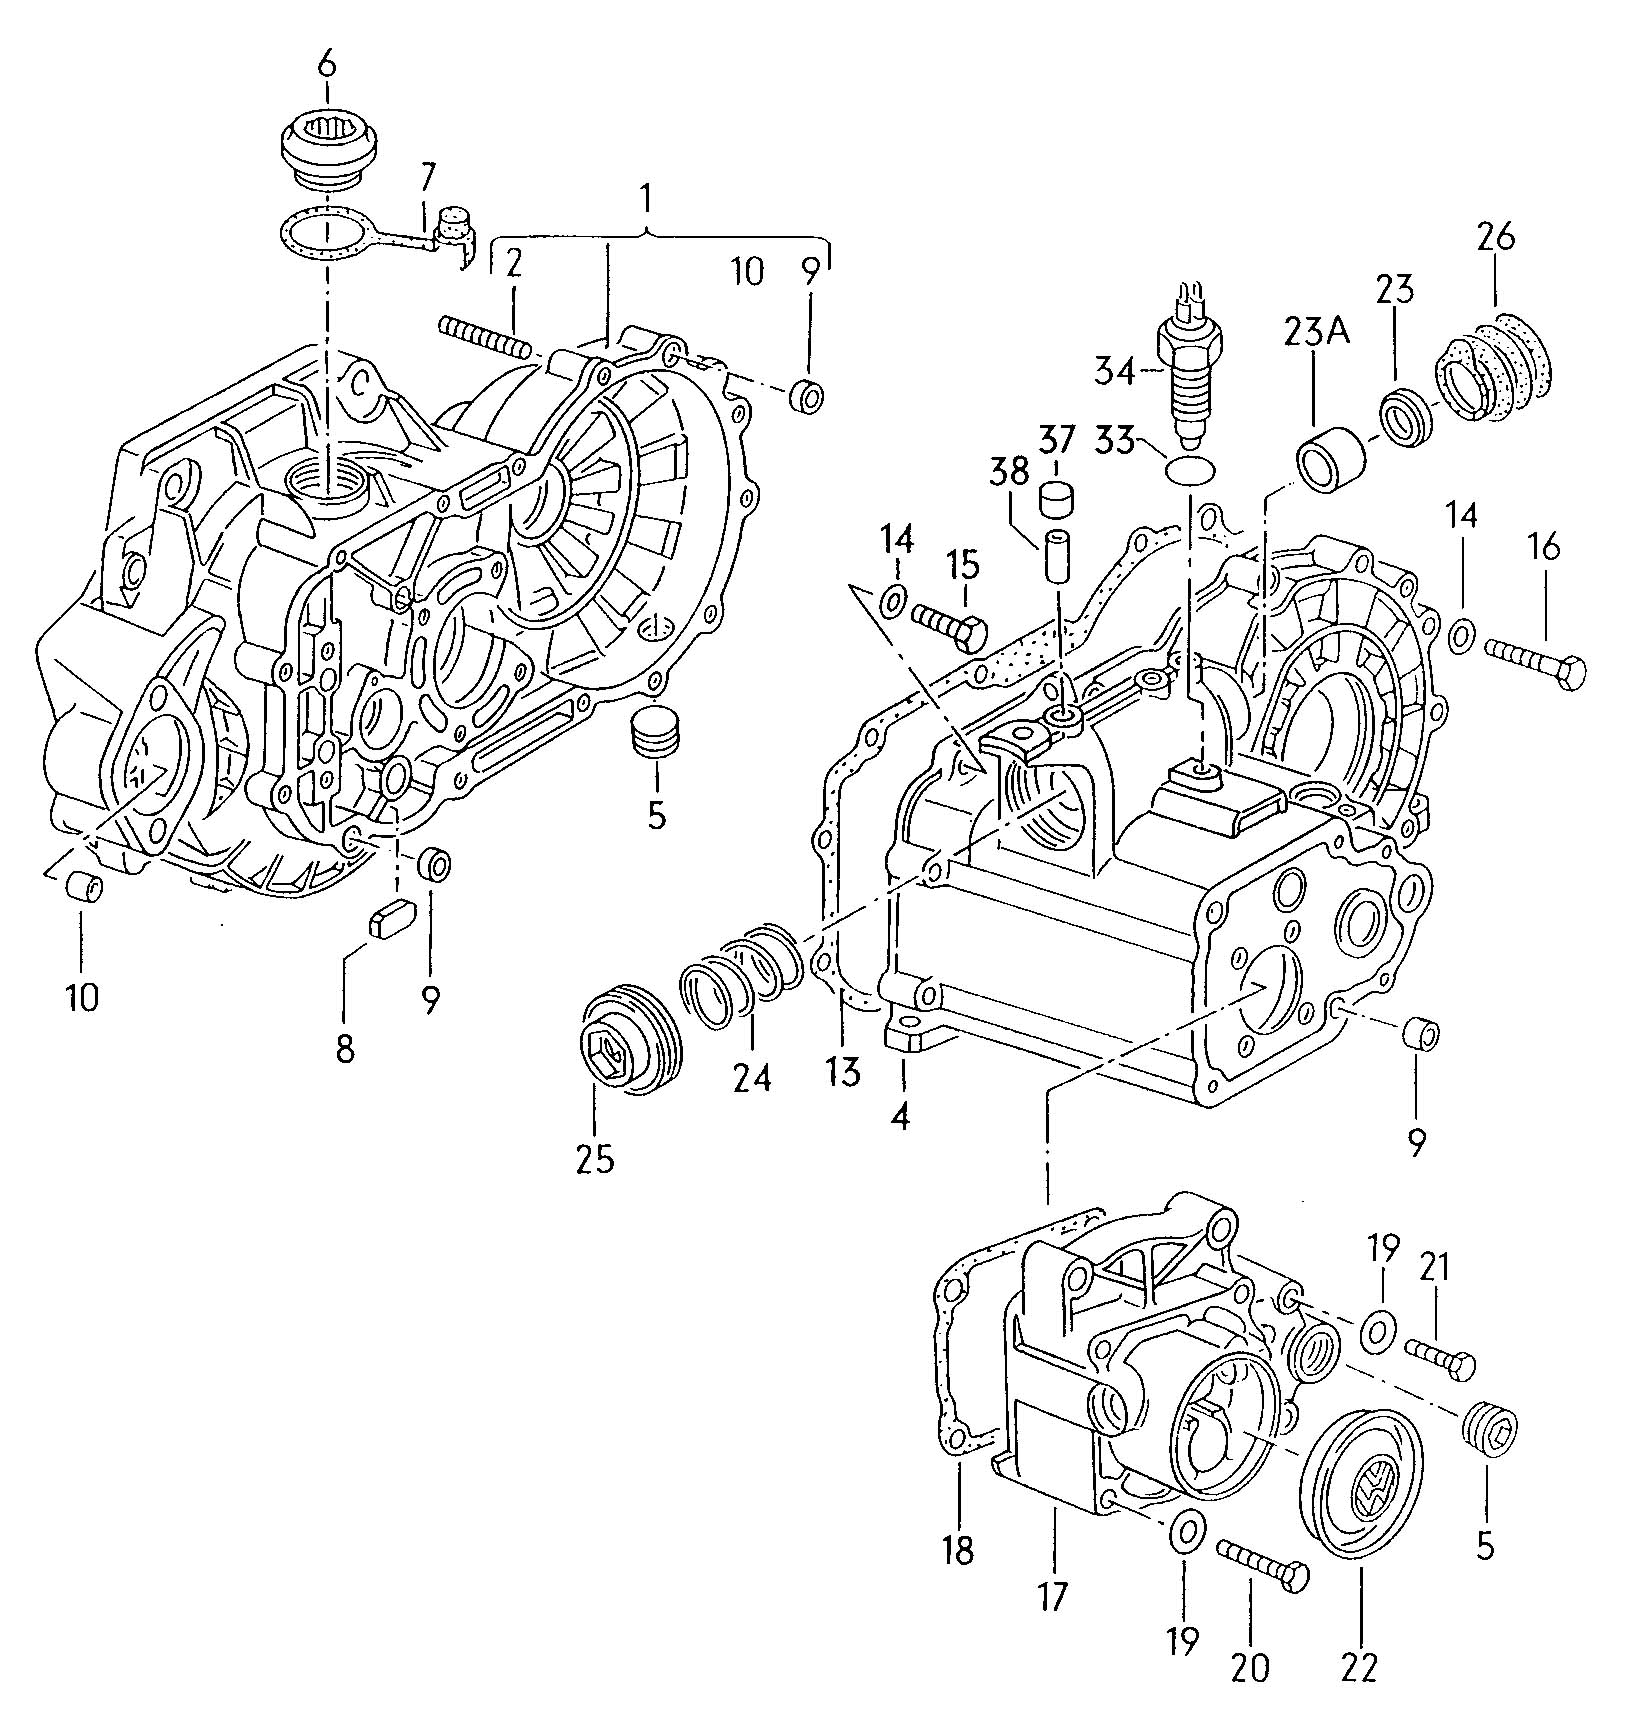 Vw Cabrio Manual Transmission